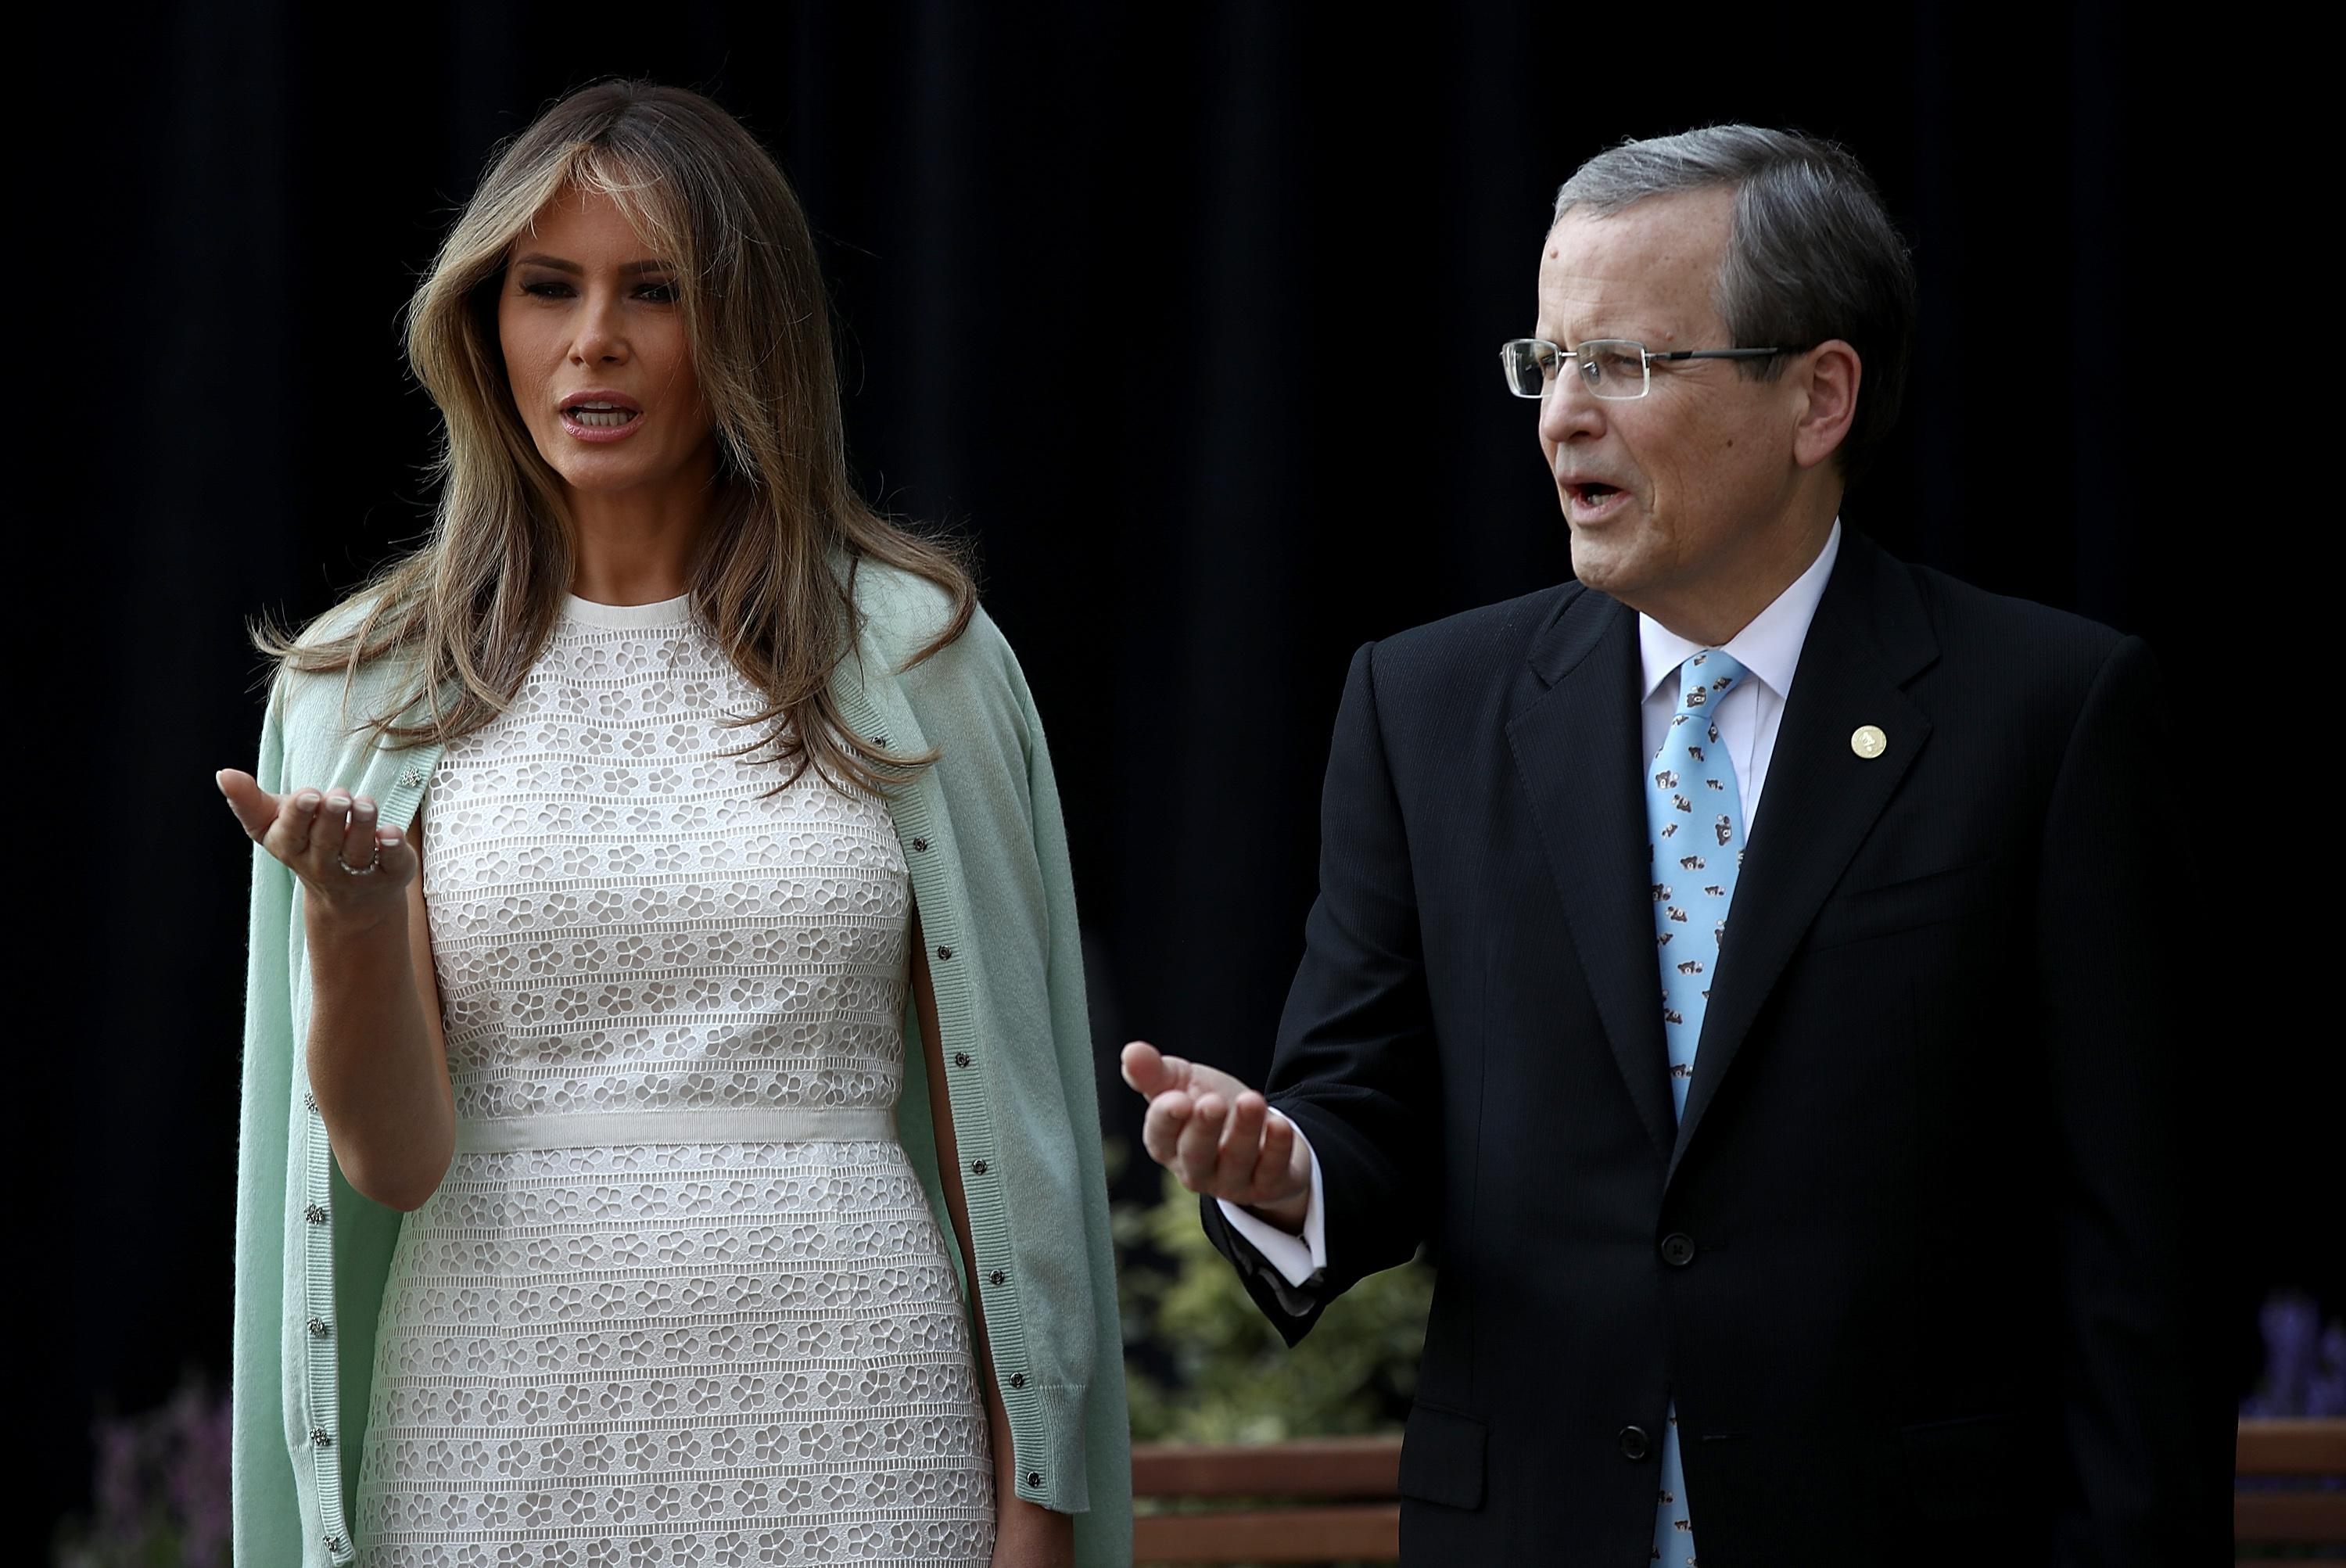 WASHINGTON, DC - APRIL 28:  U.S. first lady Melania Trump takes part in a 'Blessing of the Garden' with Michael Williams (R), chairman of the board, at the Children's National Health System April 28, 2017 in Washington, DC. Trump spoke a the opening of the Bunny Mellon Healing Garden for patients and famlies, an outdoor location for to safely spend time outdoors while receiving treatment at the hospital.  (Photo by Win McNamee/Getty Images)